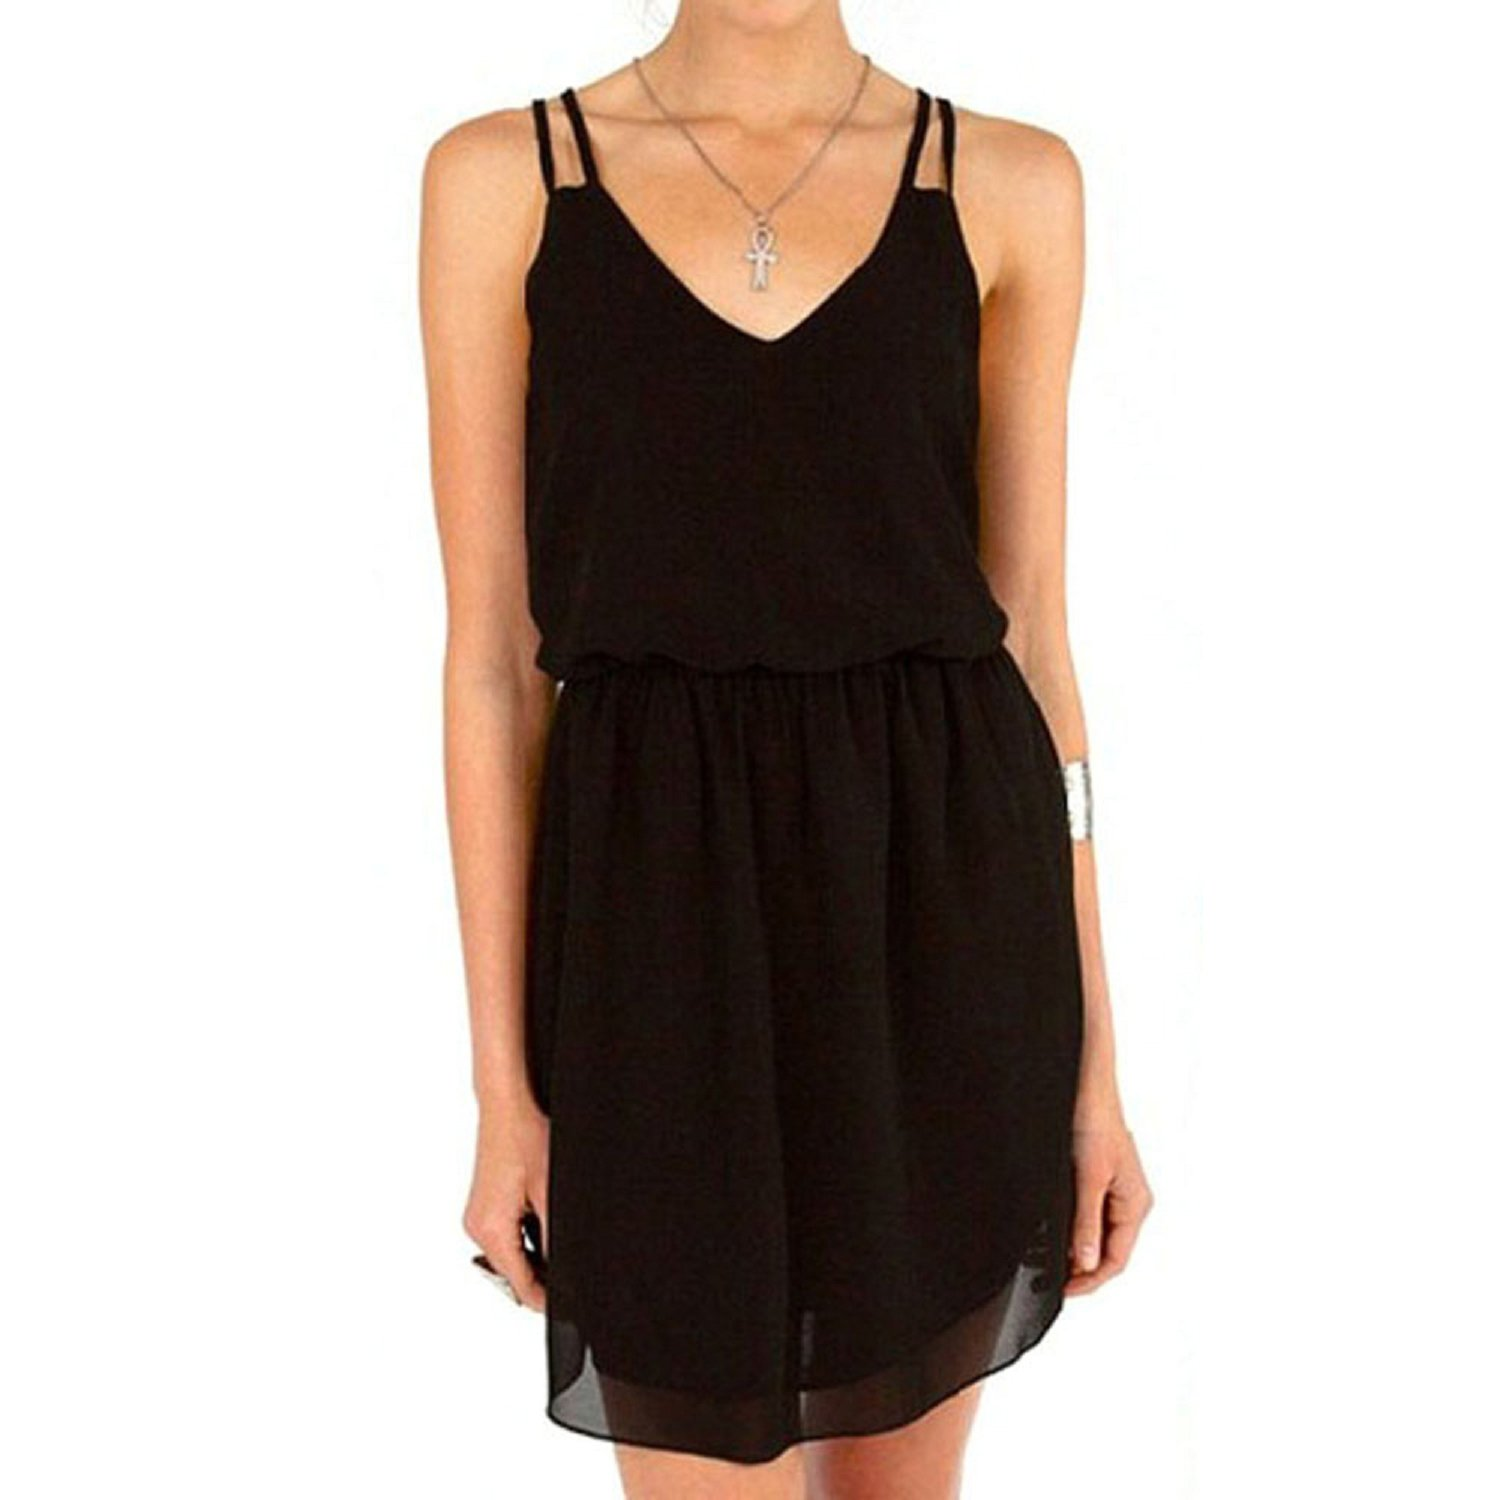 Aokdis Women Lady Summer Sexy Chiffon Casual Party Evening Cocktail Dress (L, black)